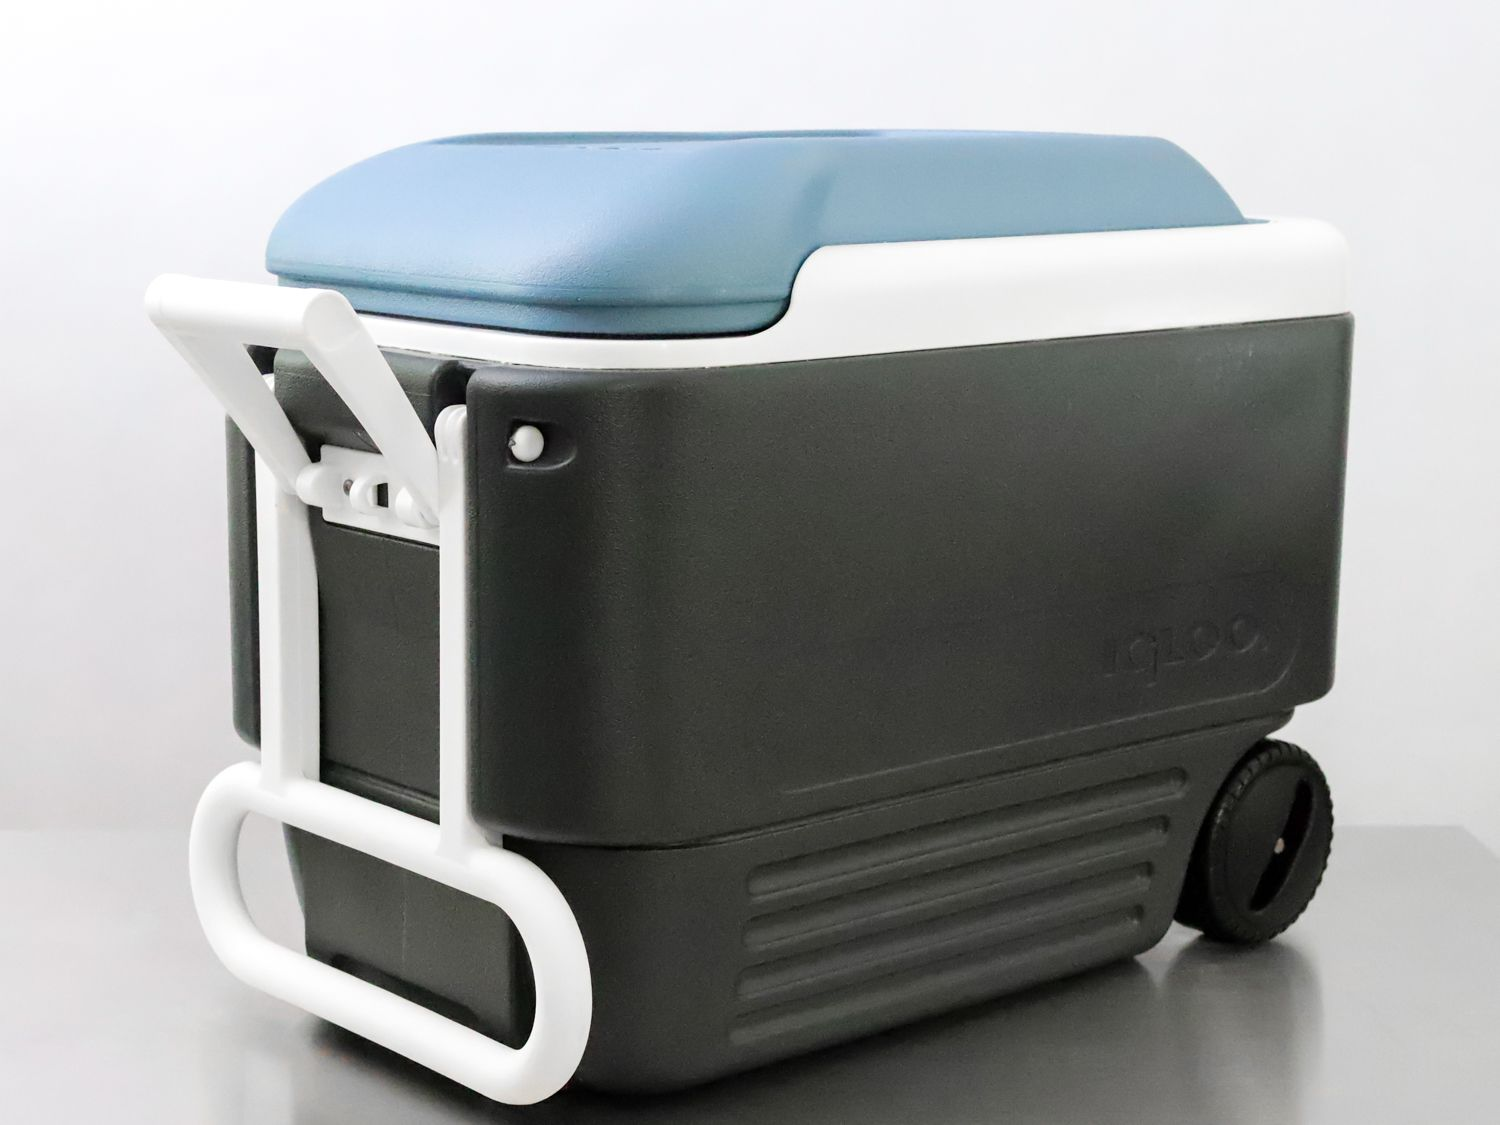 Side angle of the Igloo Max Cold Cooler